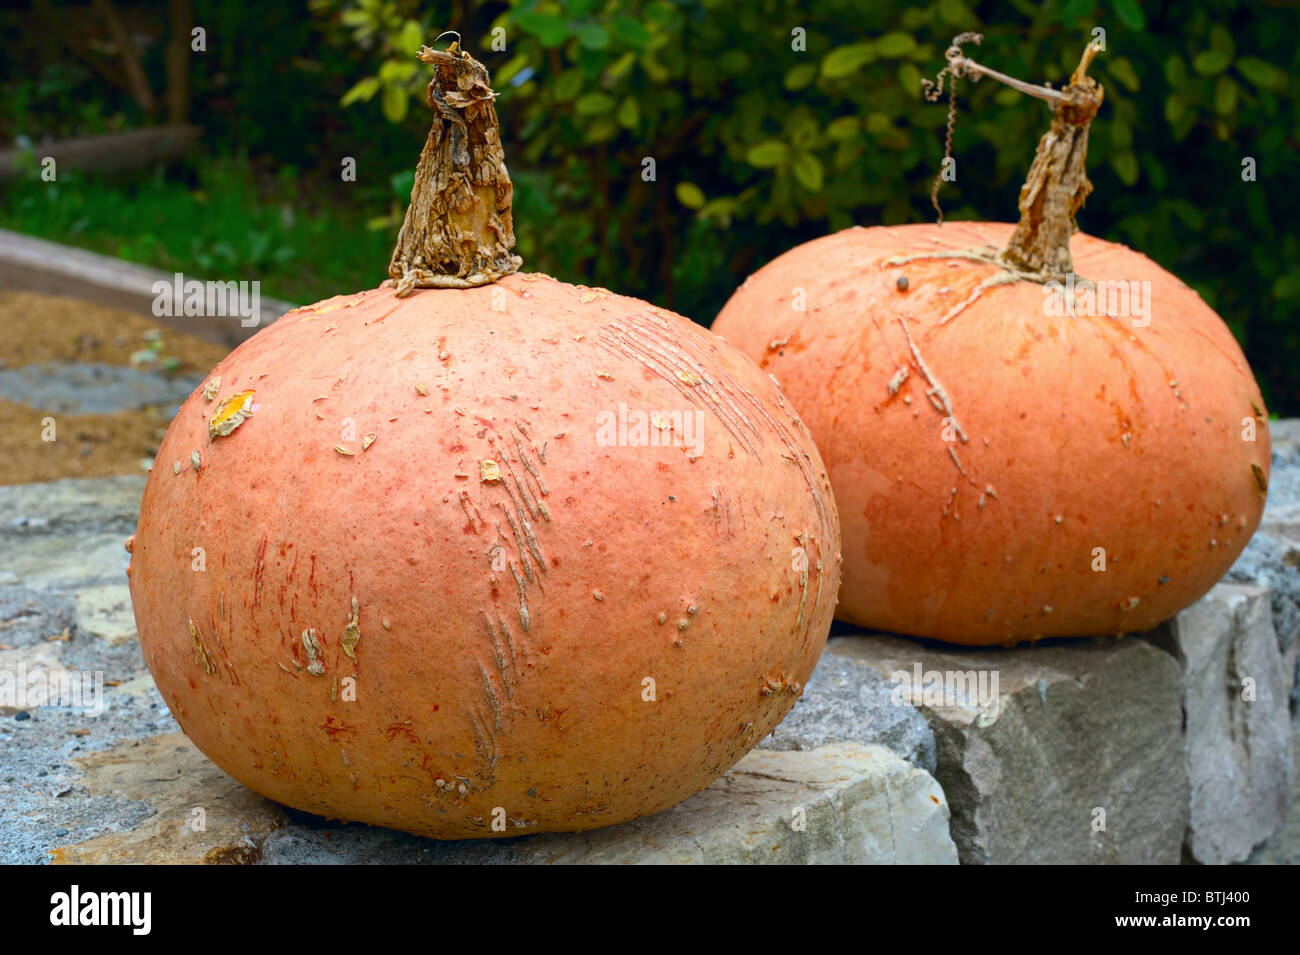 Two pumpkins sitting on a garden wall - Stock Image